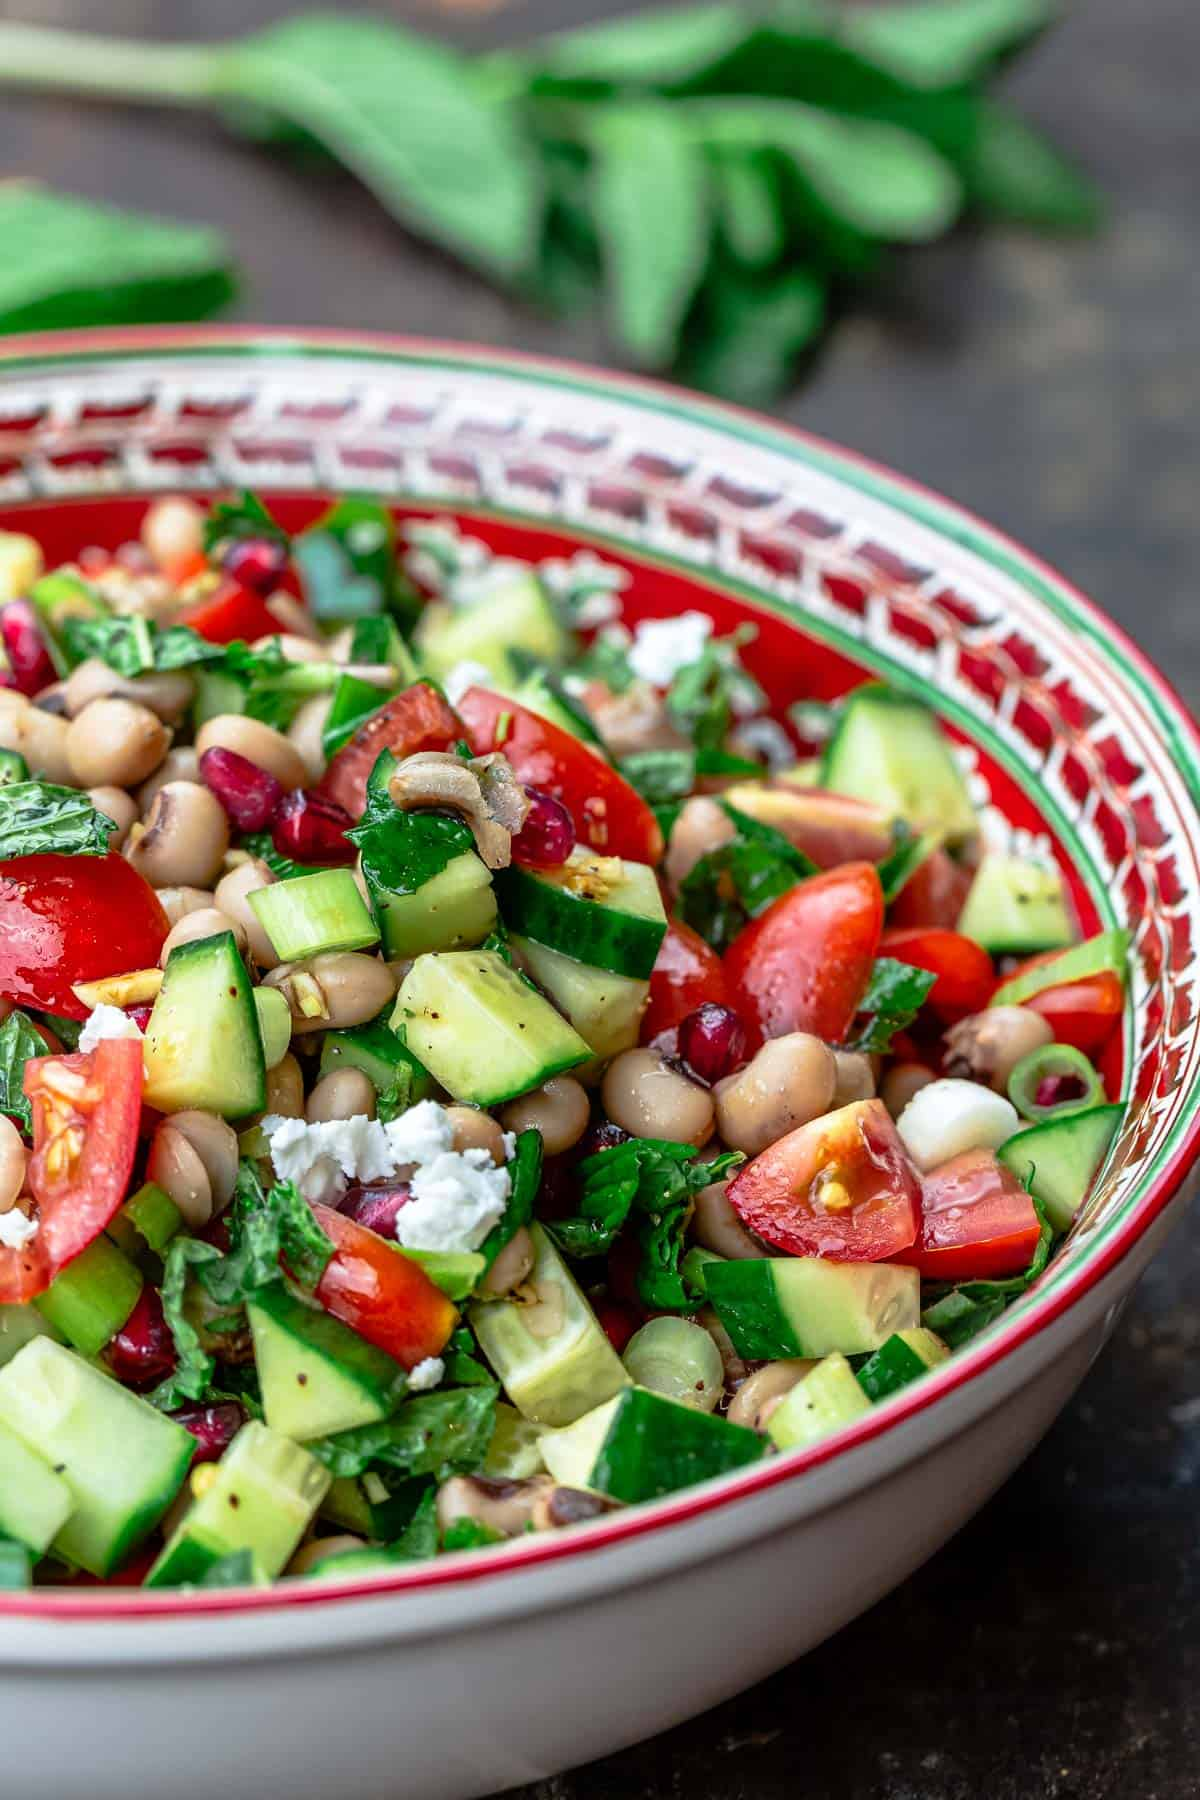 bowl of black eyed pea salad with garnish of fresh mint to the side